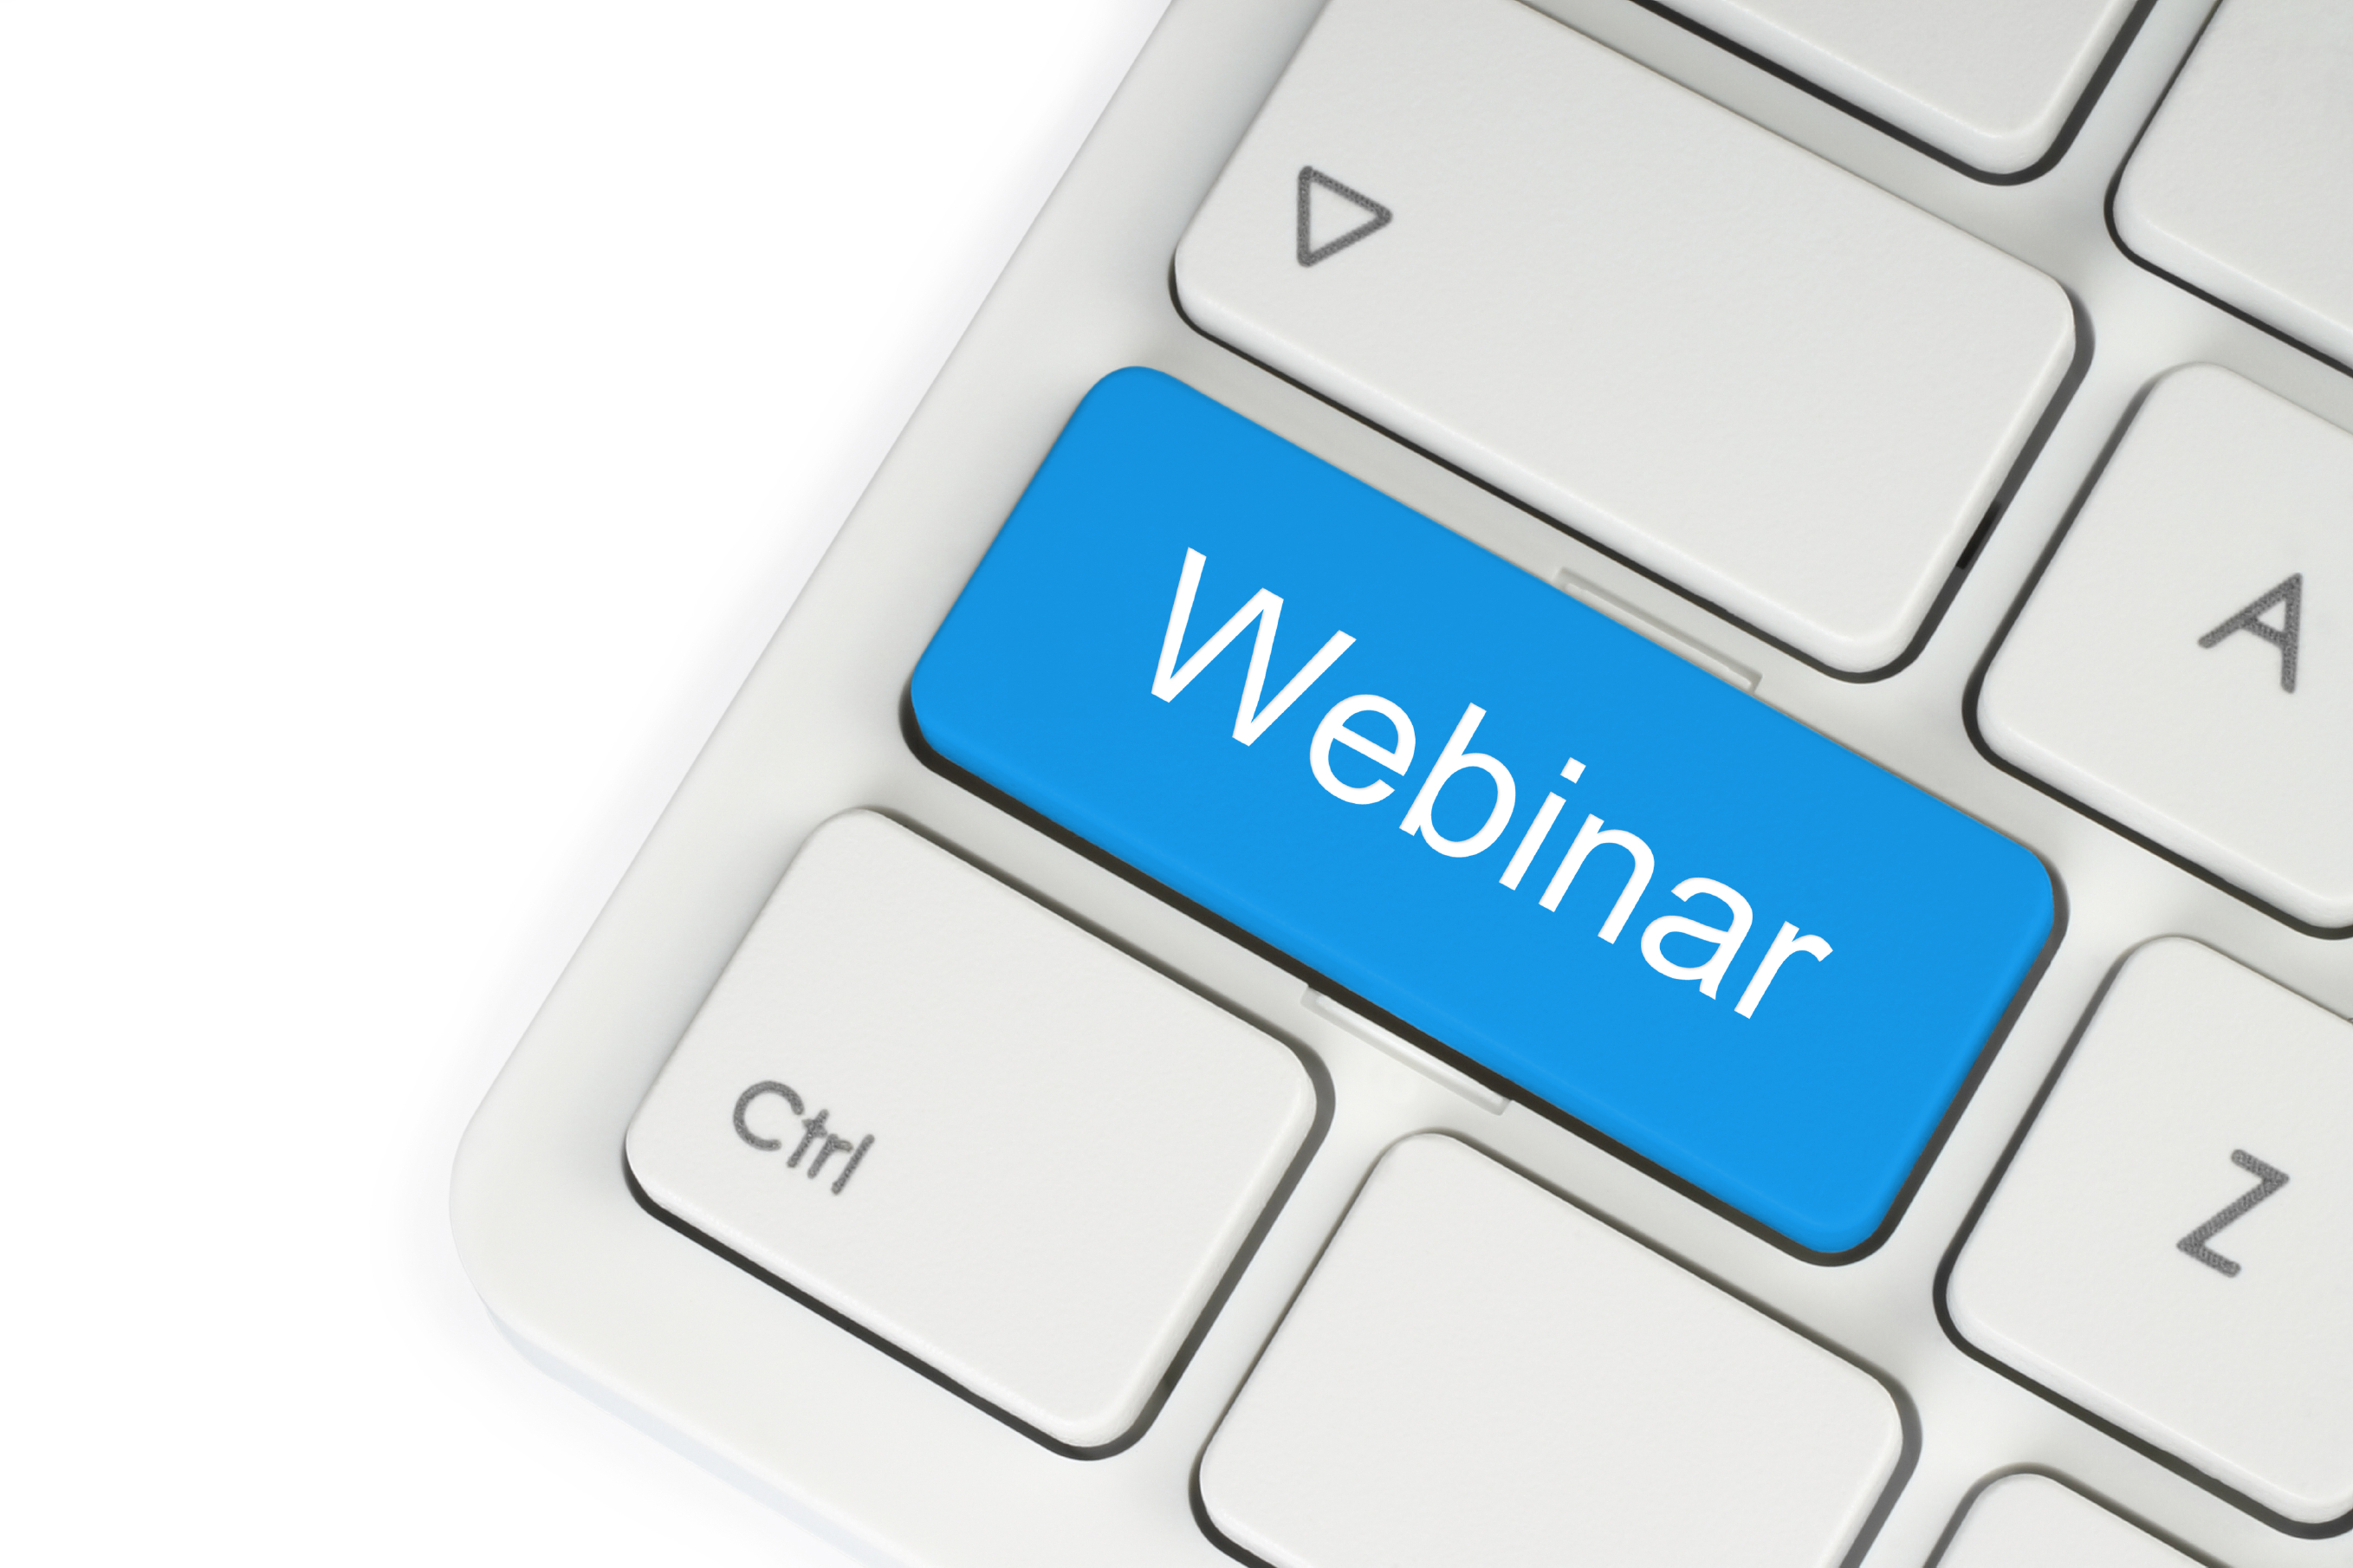 Computer-in-an-article-for-grant-management-webinar